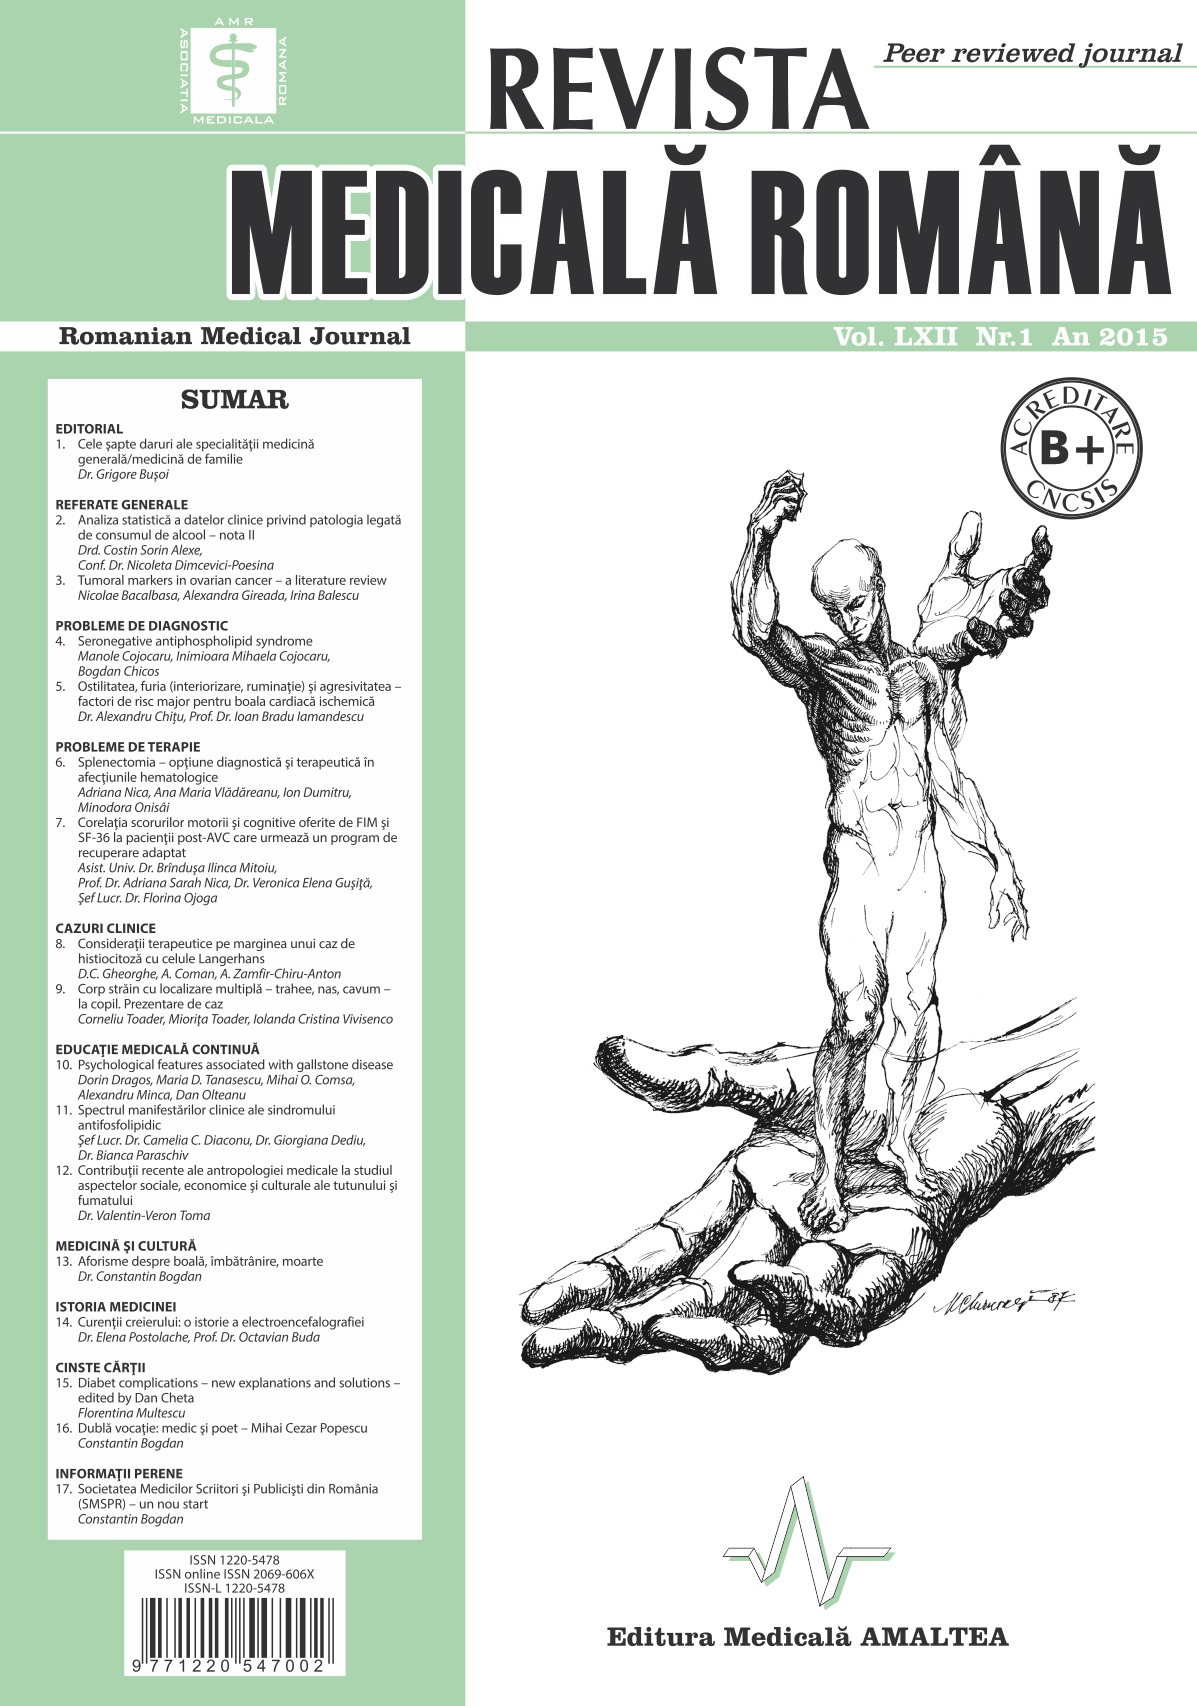 REVISTA MEDICALA ROMANA - Romanian Medical Journal, Vol. LXII, No. 1, Year 2015